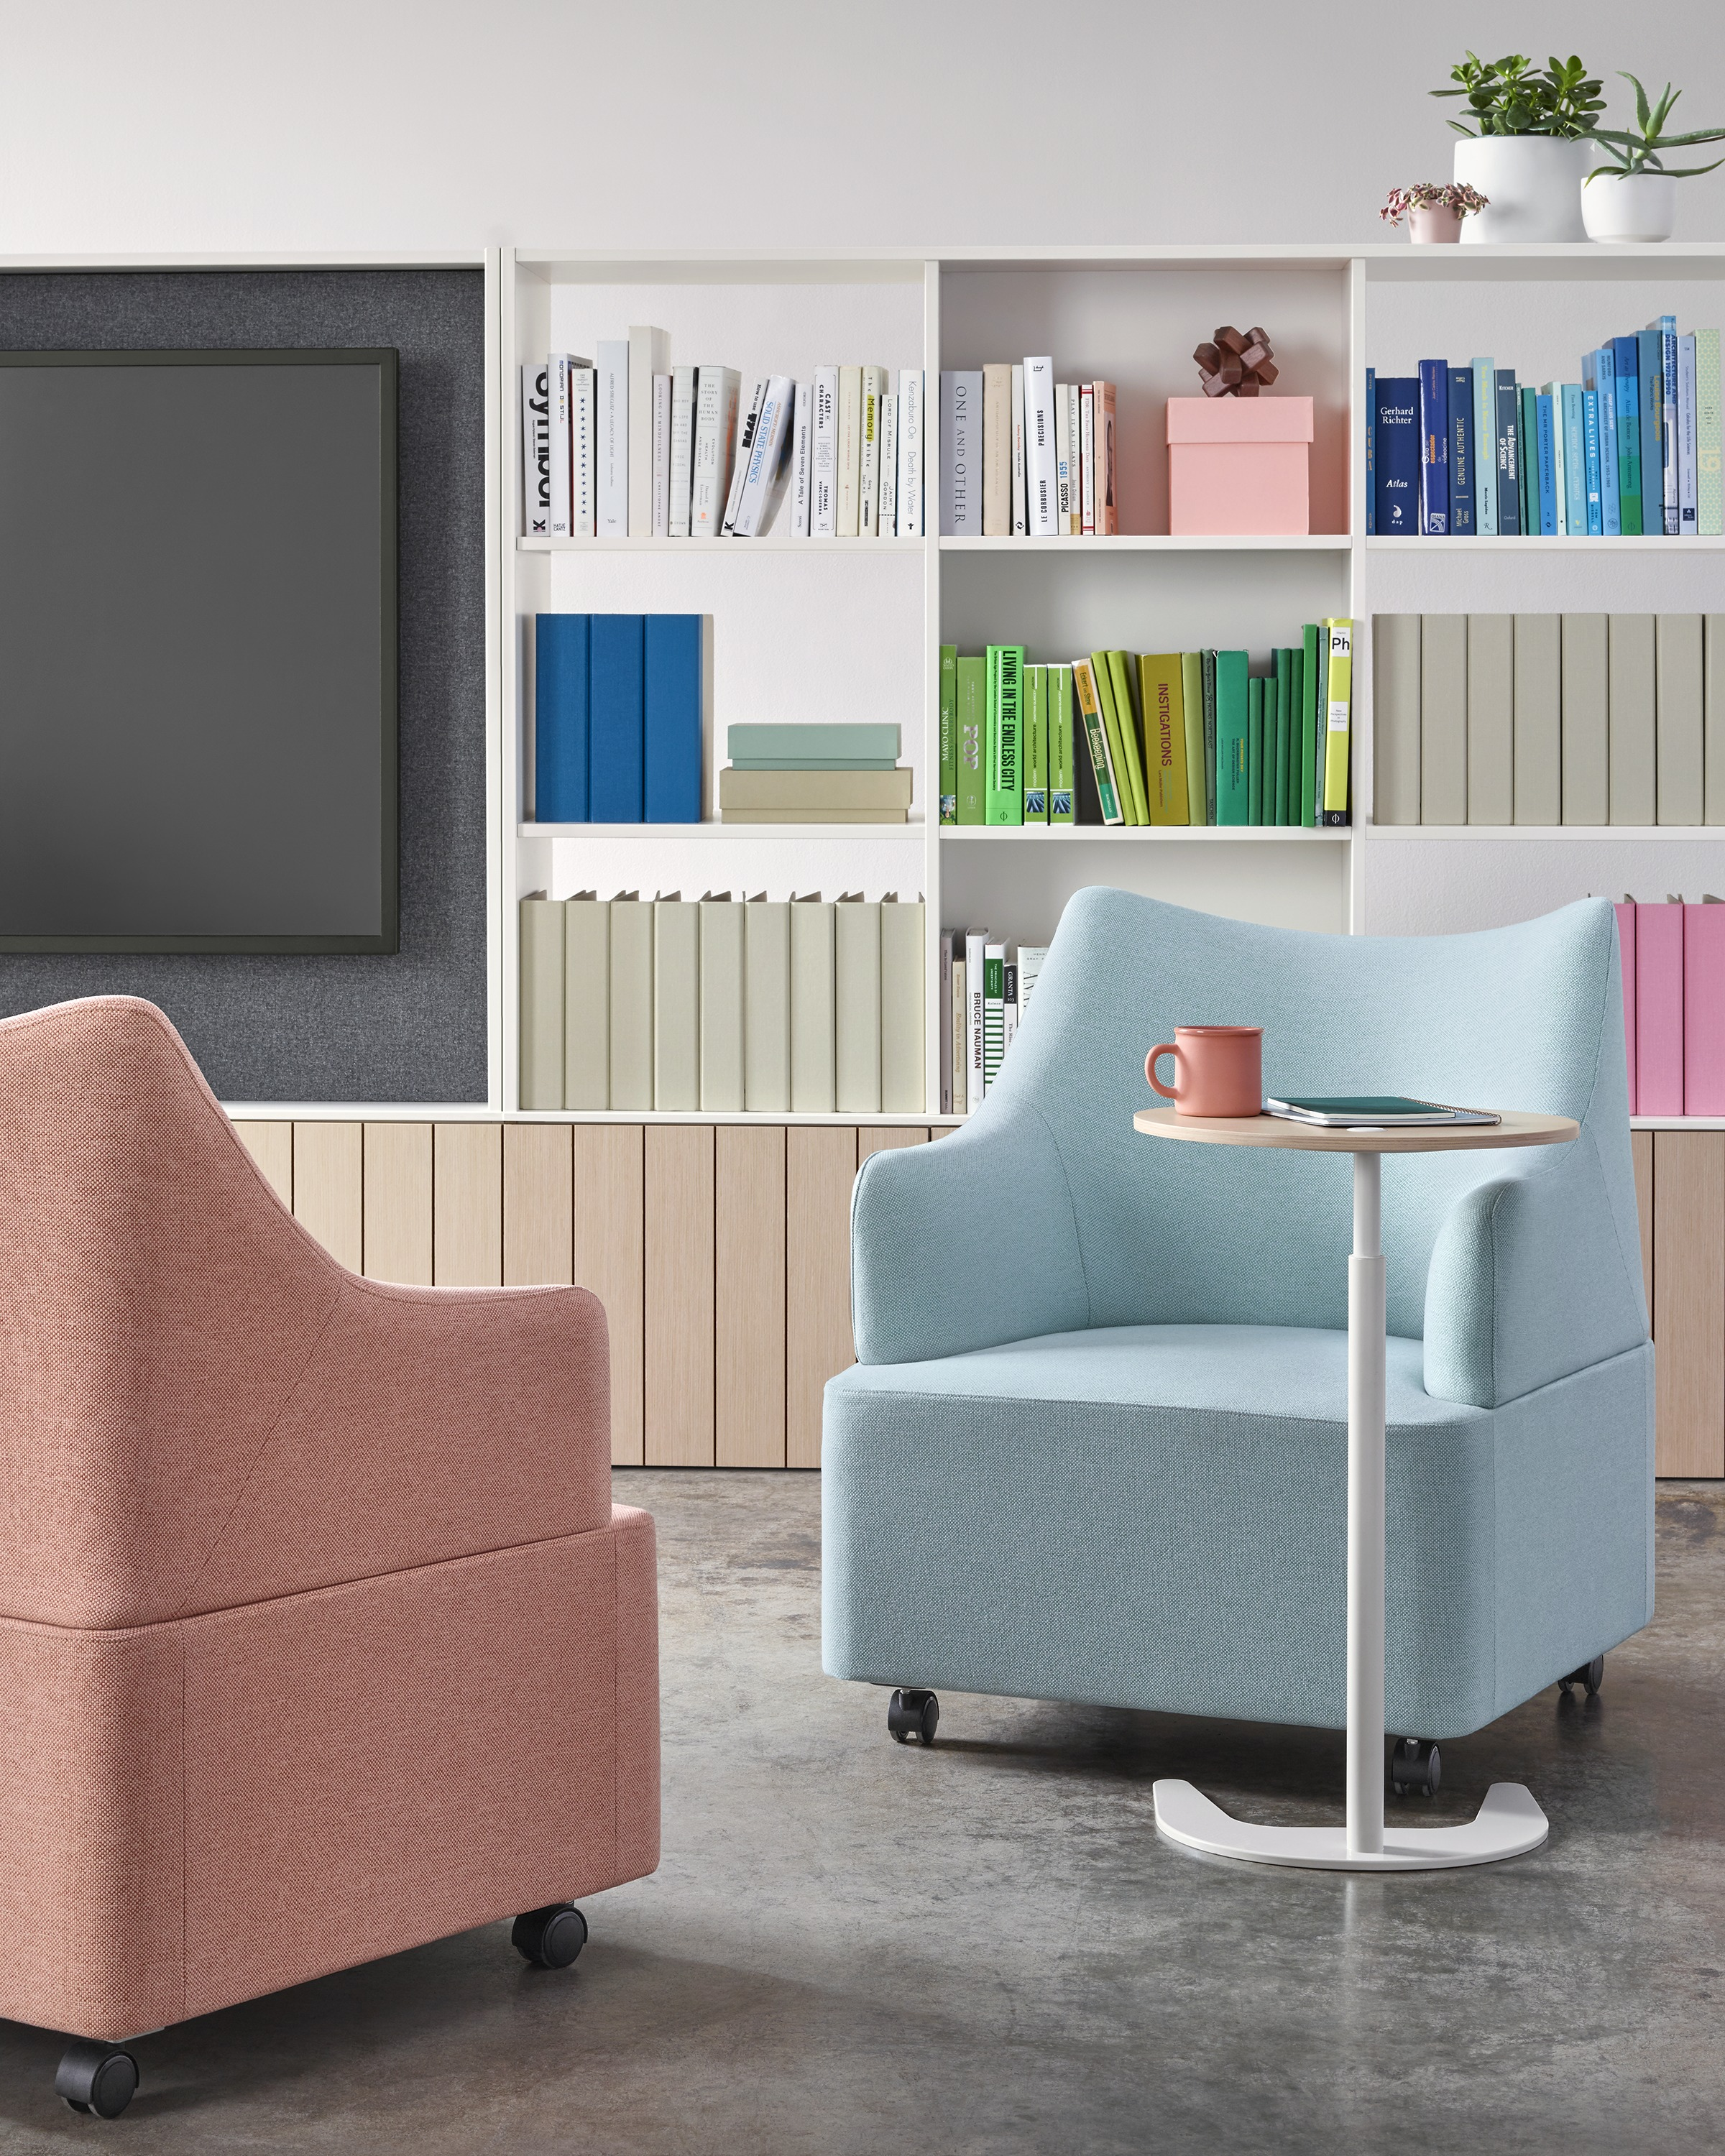 Plex Product Images - Lounge Seating - Herman Miller